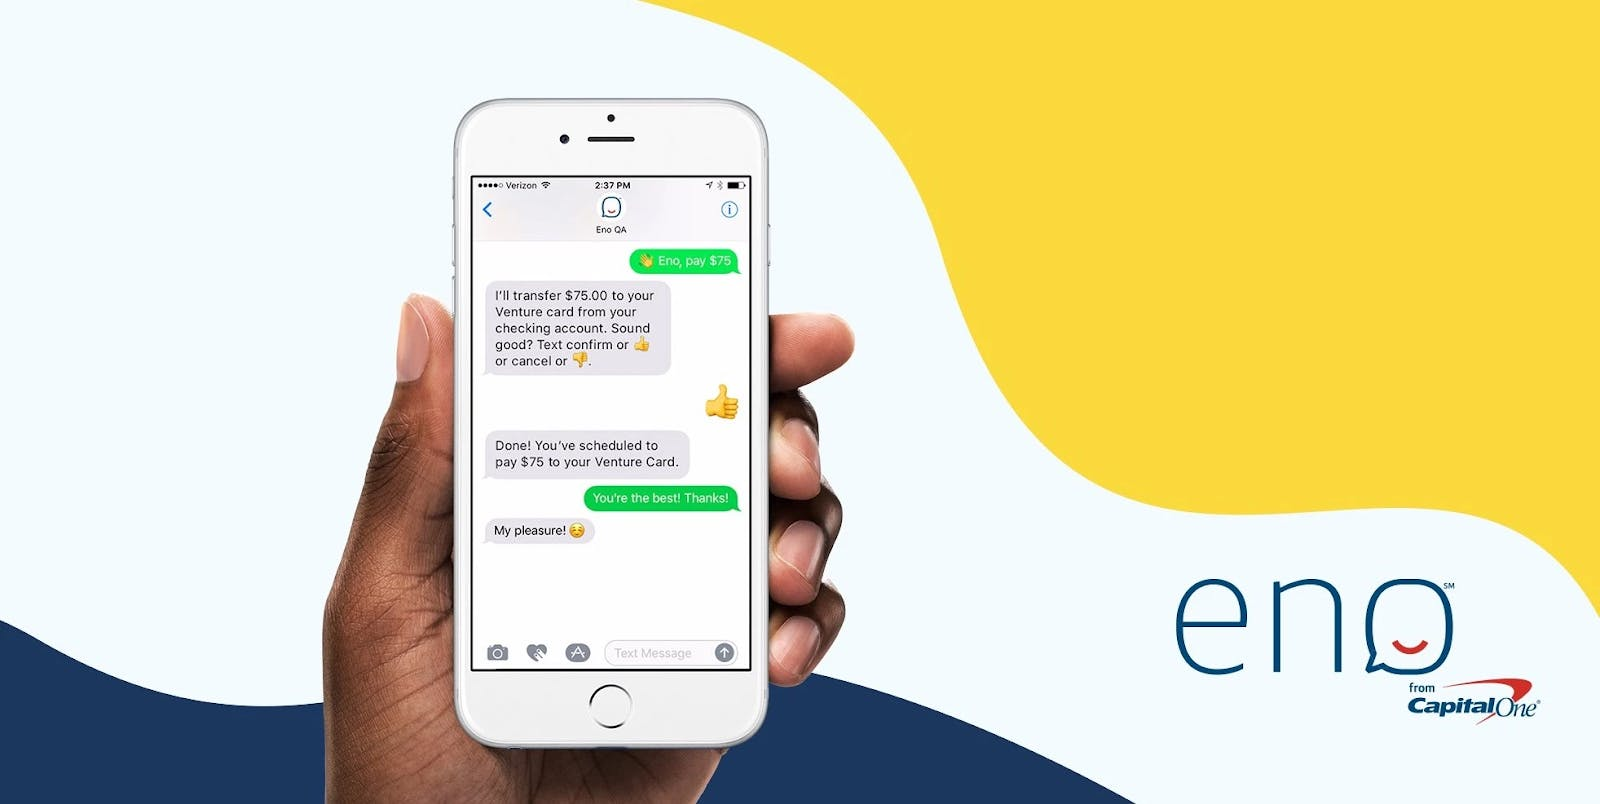 Chatting with Capital One's virtual assistant Eno